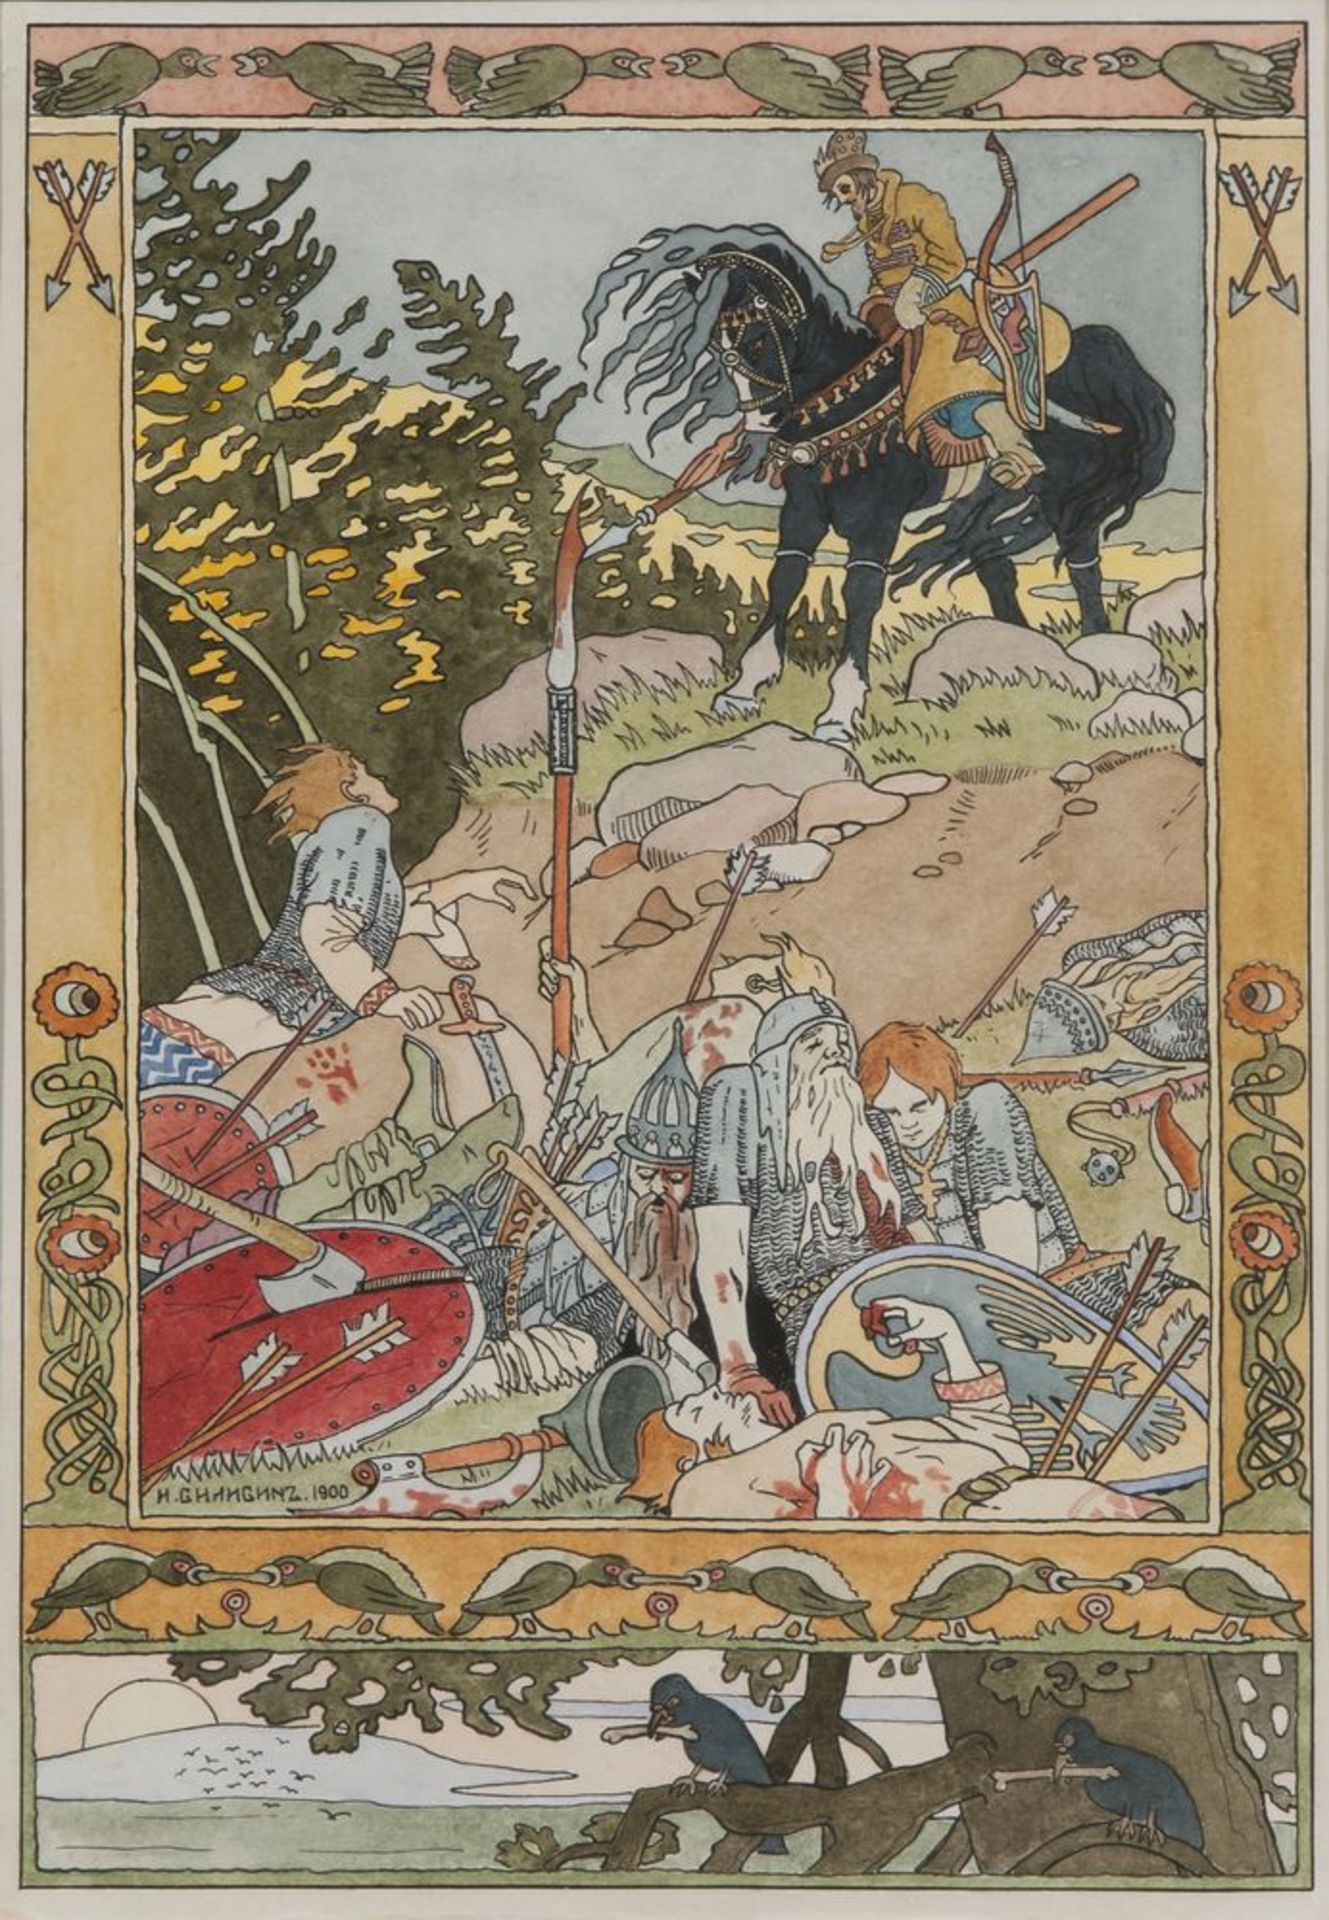 Los 16 - Ivan Bilibin (1876-1942) - The force is beaten - Ivan Tsarevich and soldiers. [...]